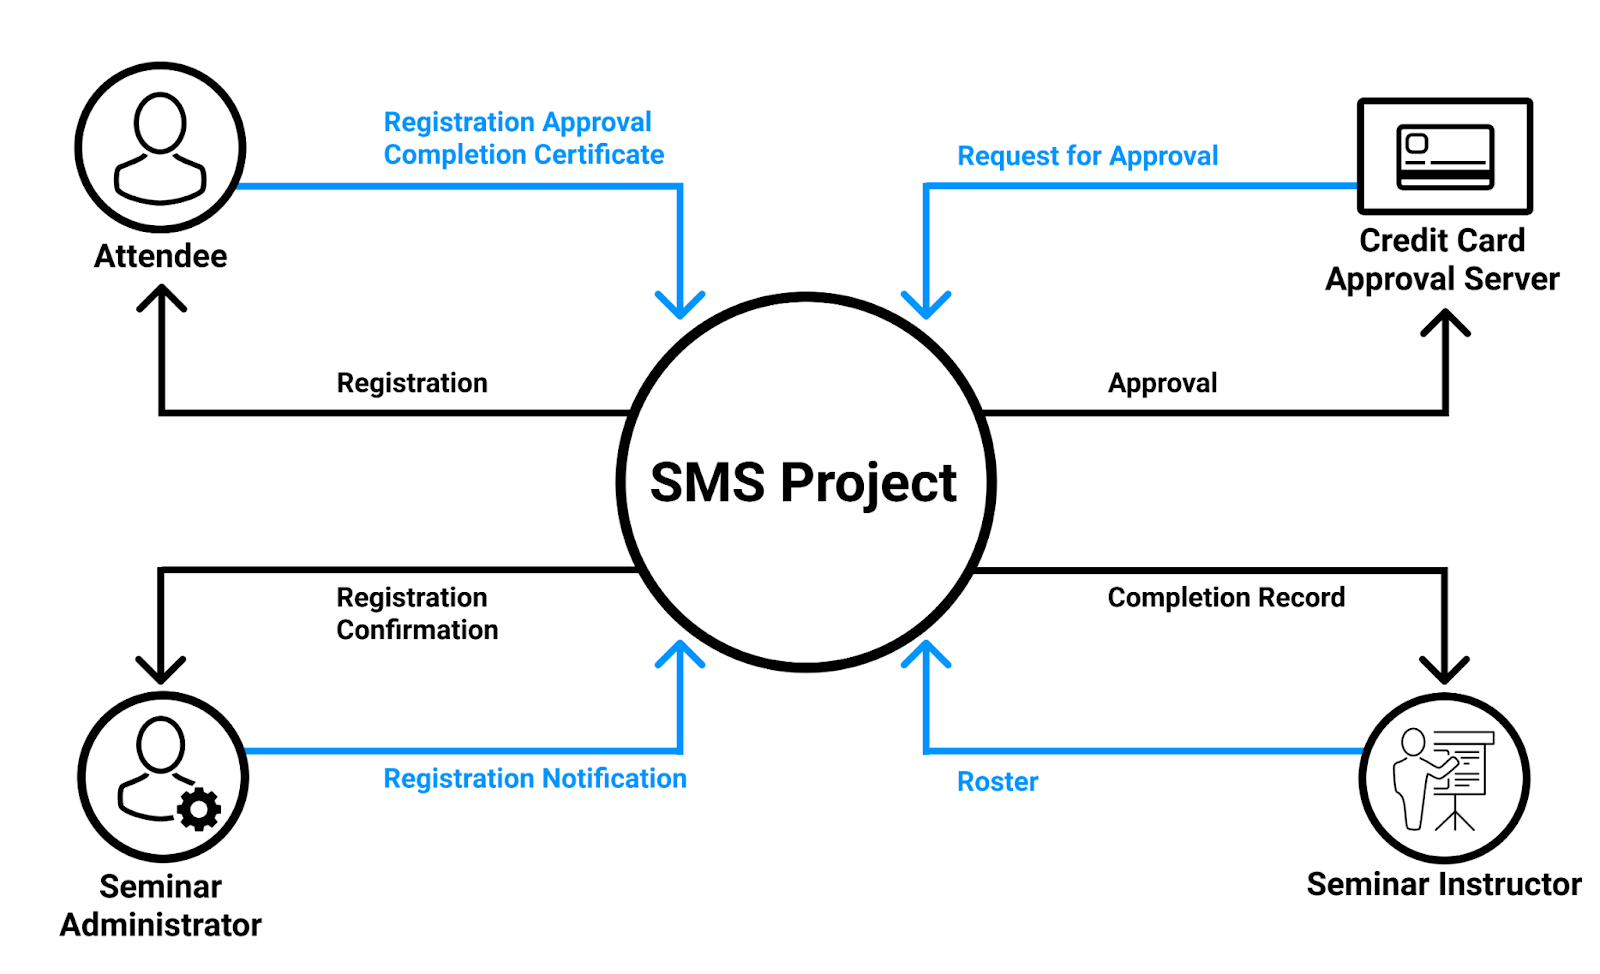 A graphic explaining Context DFD - An SMS project includes an Attendee, a Credit Card Approval Server, a Seminar Instructor, and a Seminar Administrator. All requests and approvals go between the project and the four outer parts.